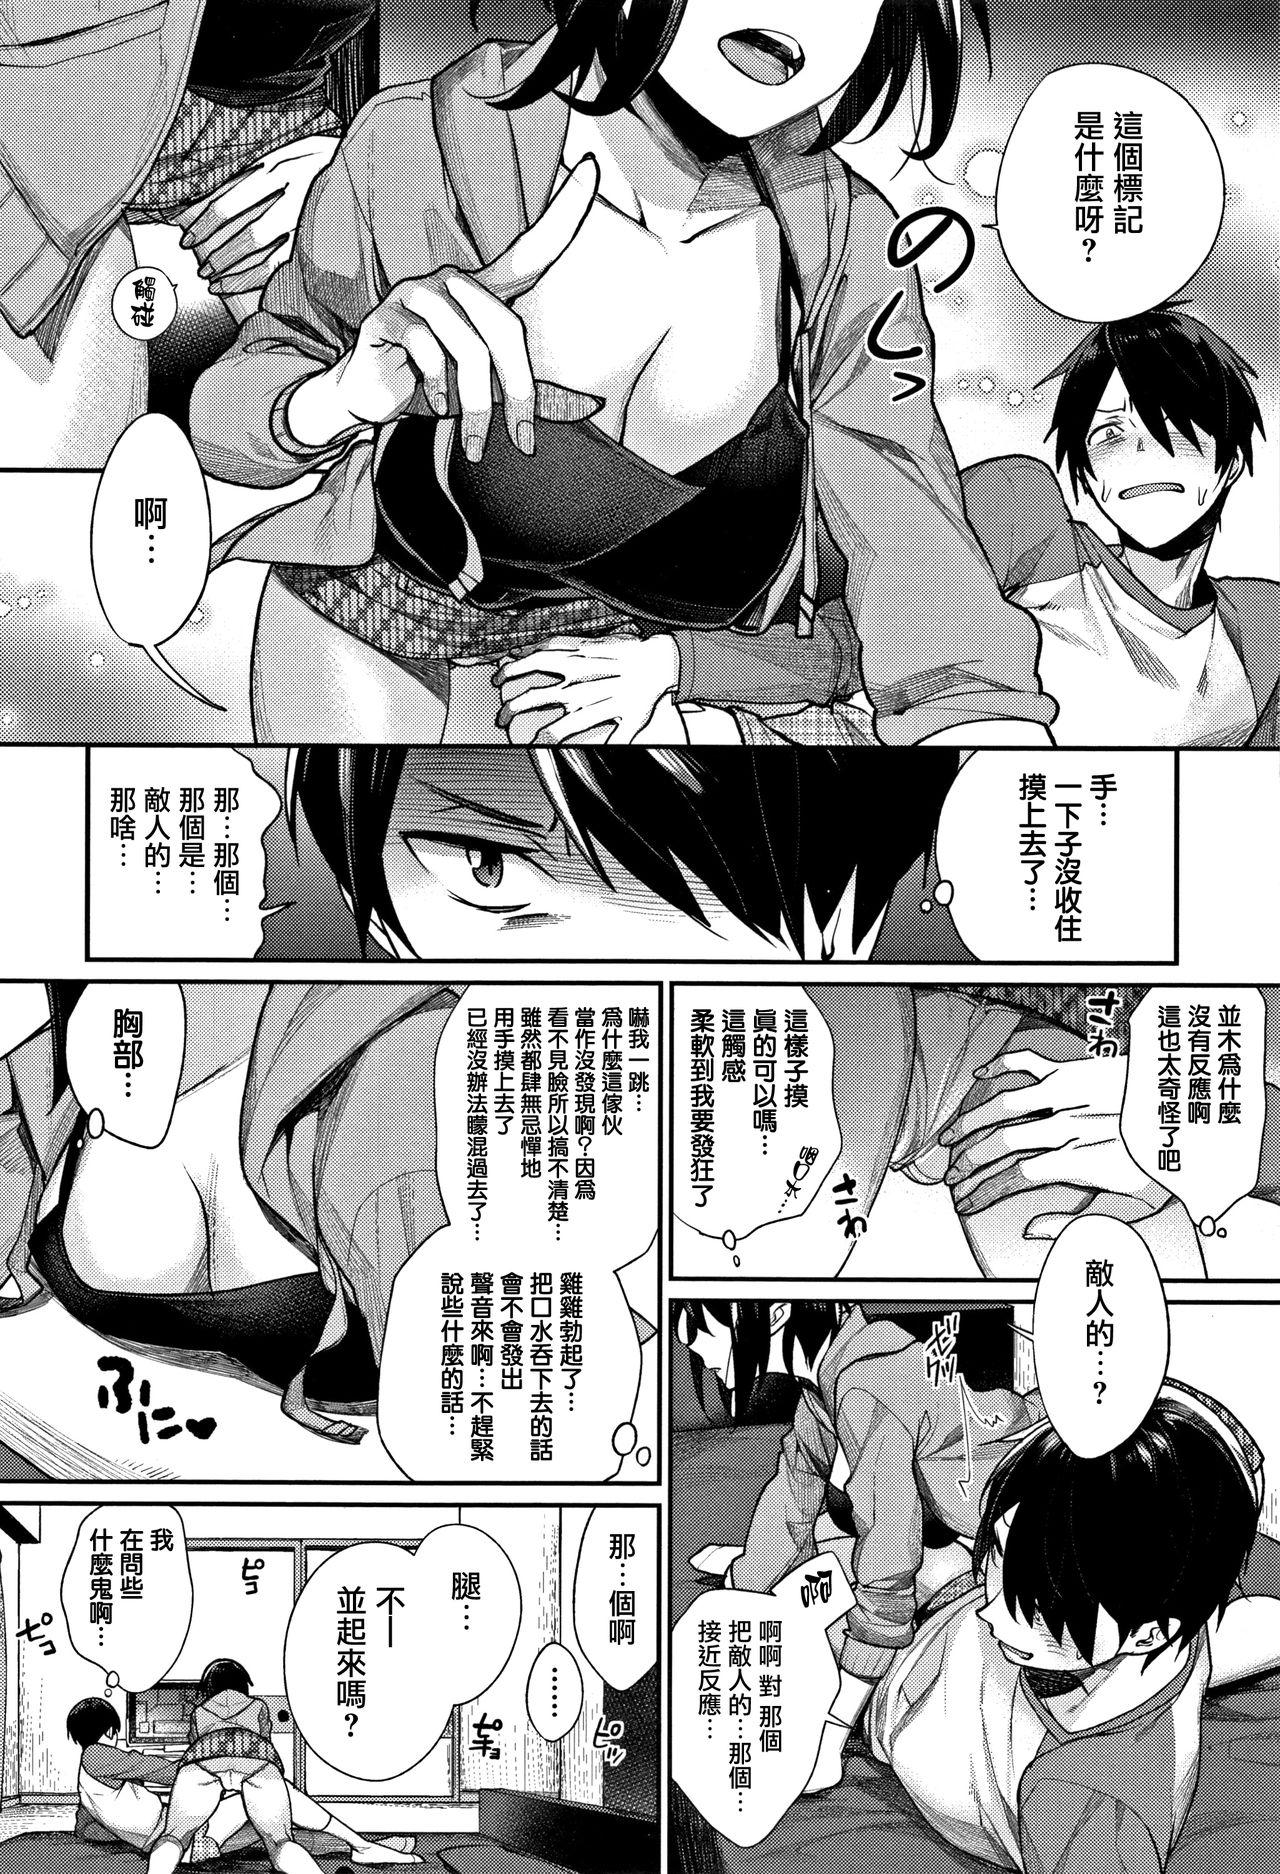 [MGMEE] Bokura no Etude - Our H Chu Do Ch.1-7 [Chinese] [無邪気漢化組] 31